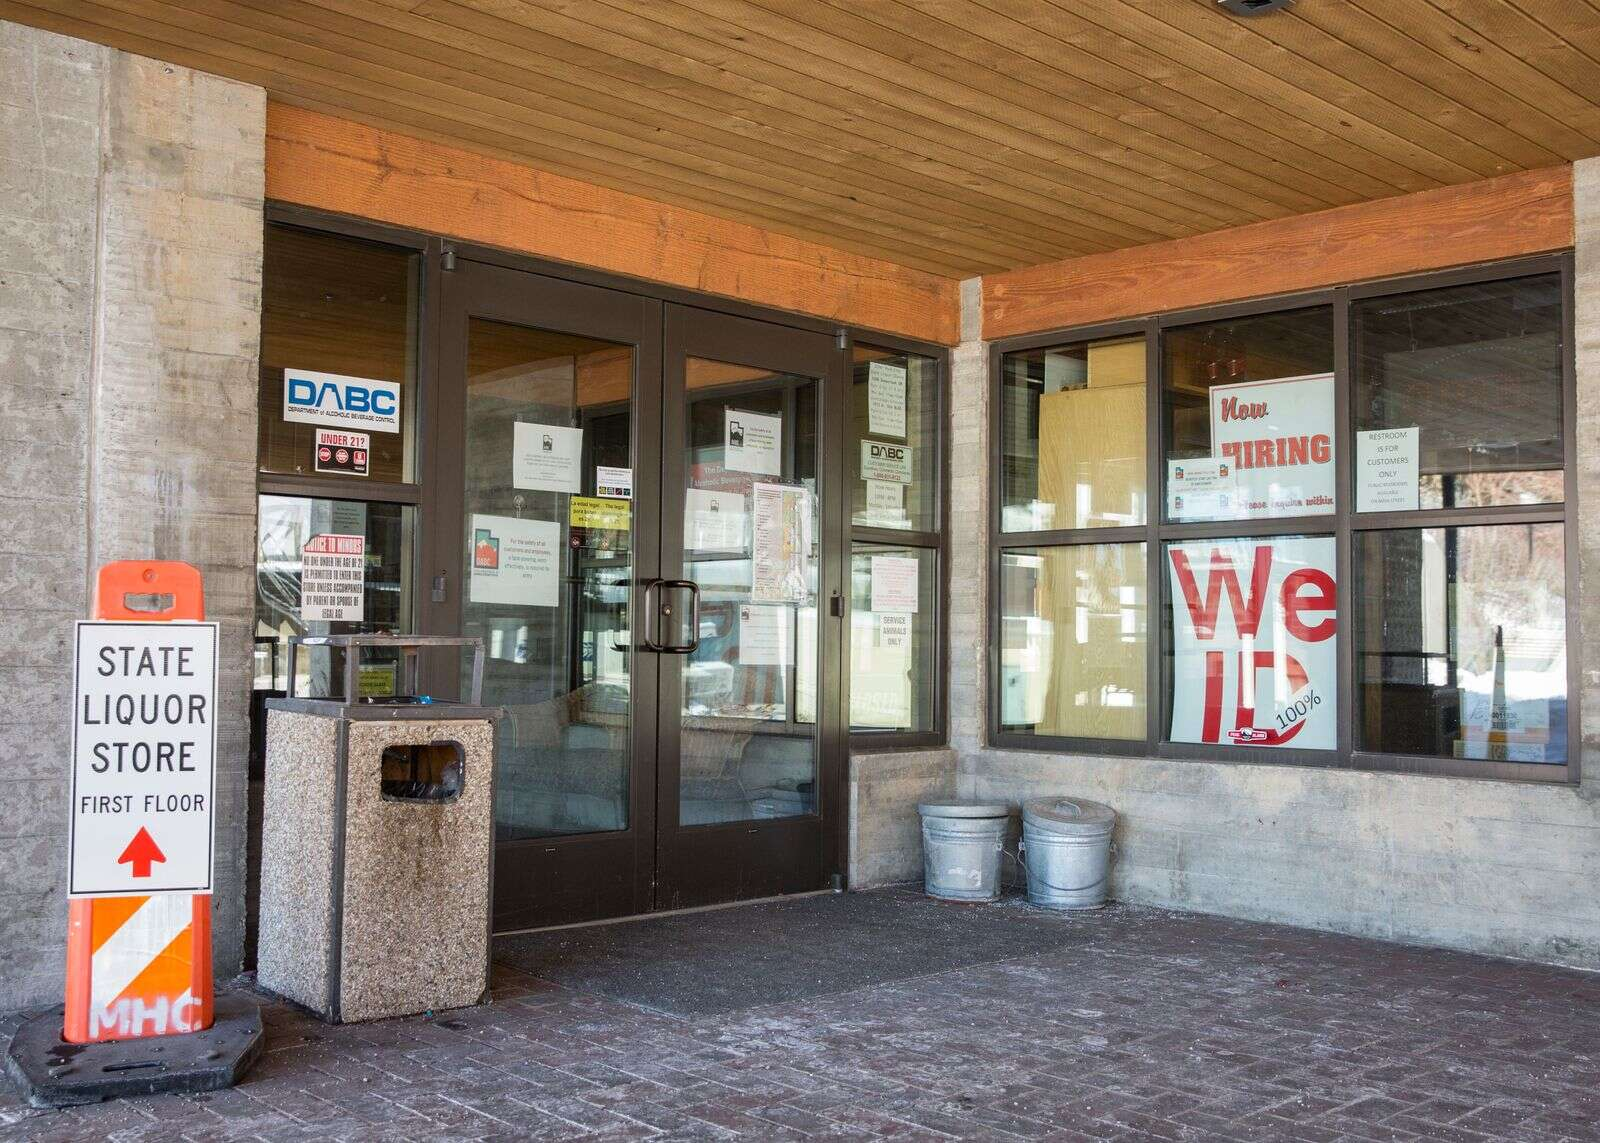 Park City liquor store remains closed and a reopening date is unknown